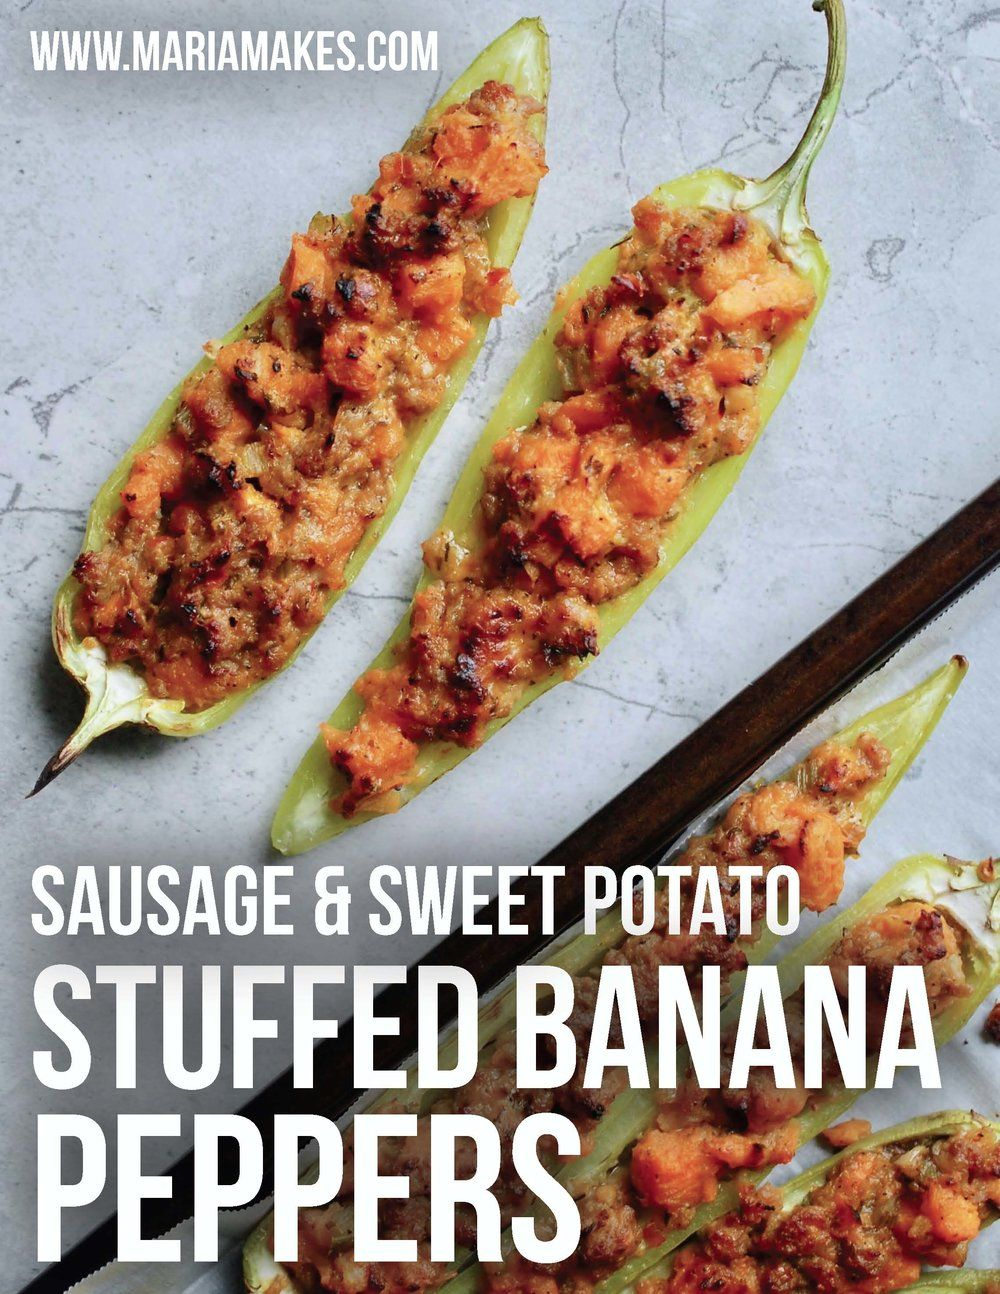 Sausage Sweet Potato Stuffed Banana Peppers Maria Makes Wholesome Simple Recipes For Every Day In 2020 Recipes With Banana Peppers Stuffed Banana Peppers Stuffed Peppers